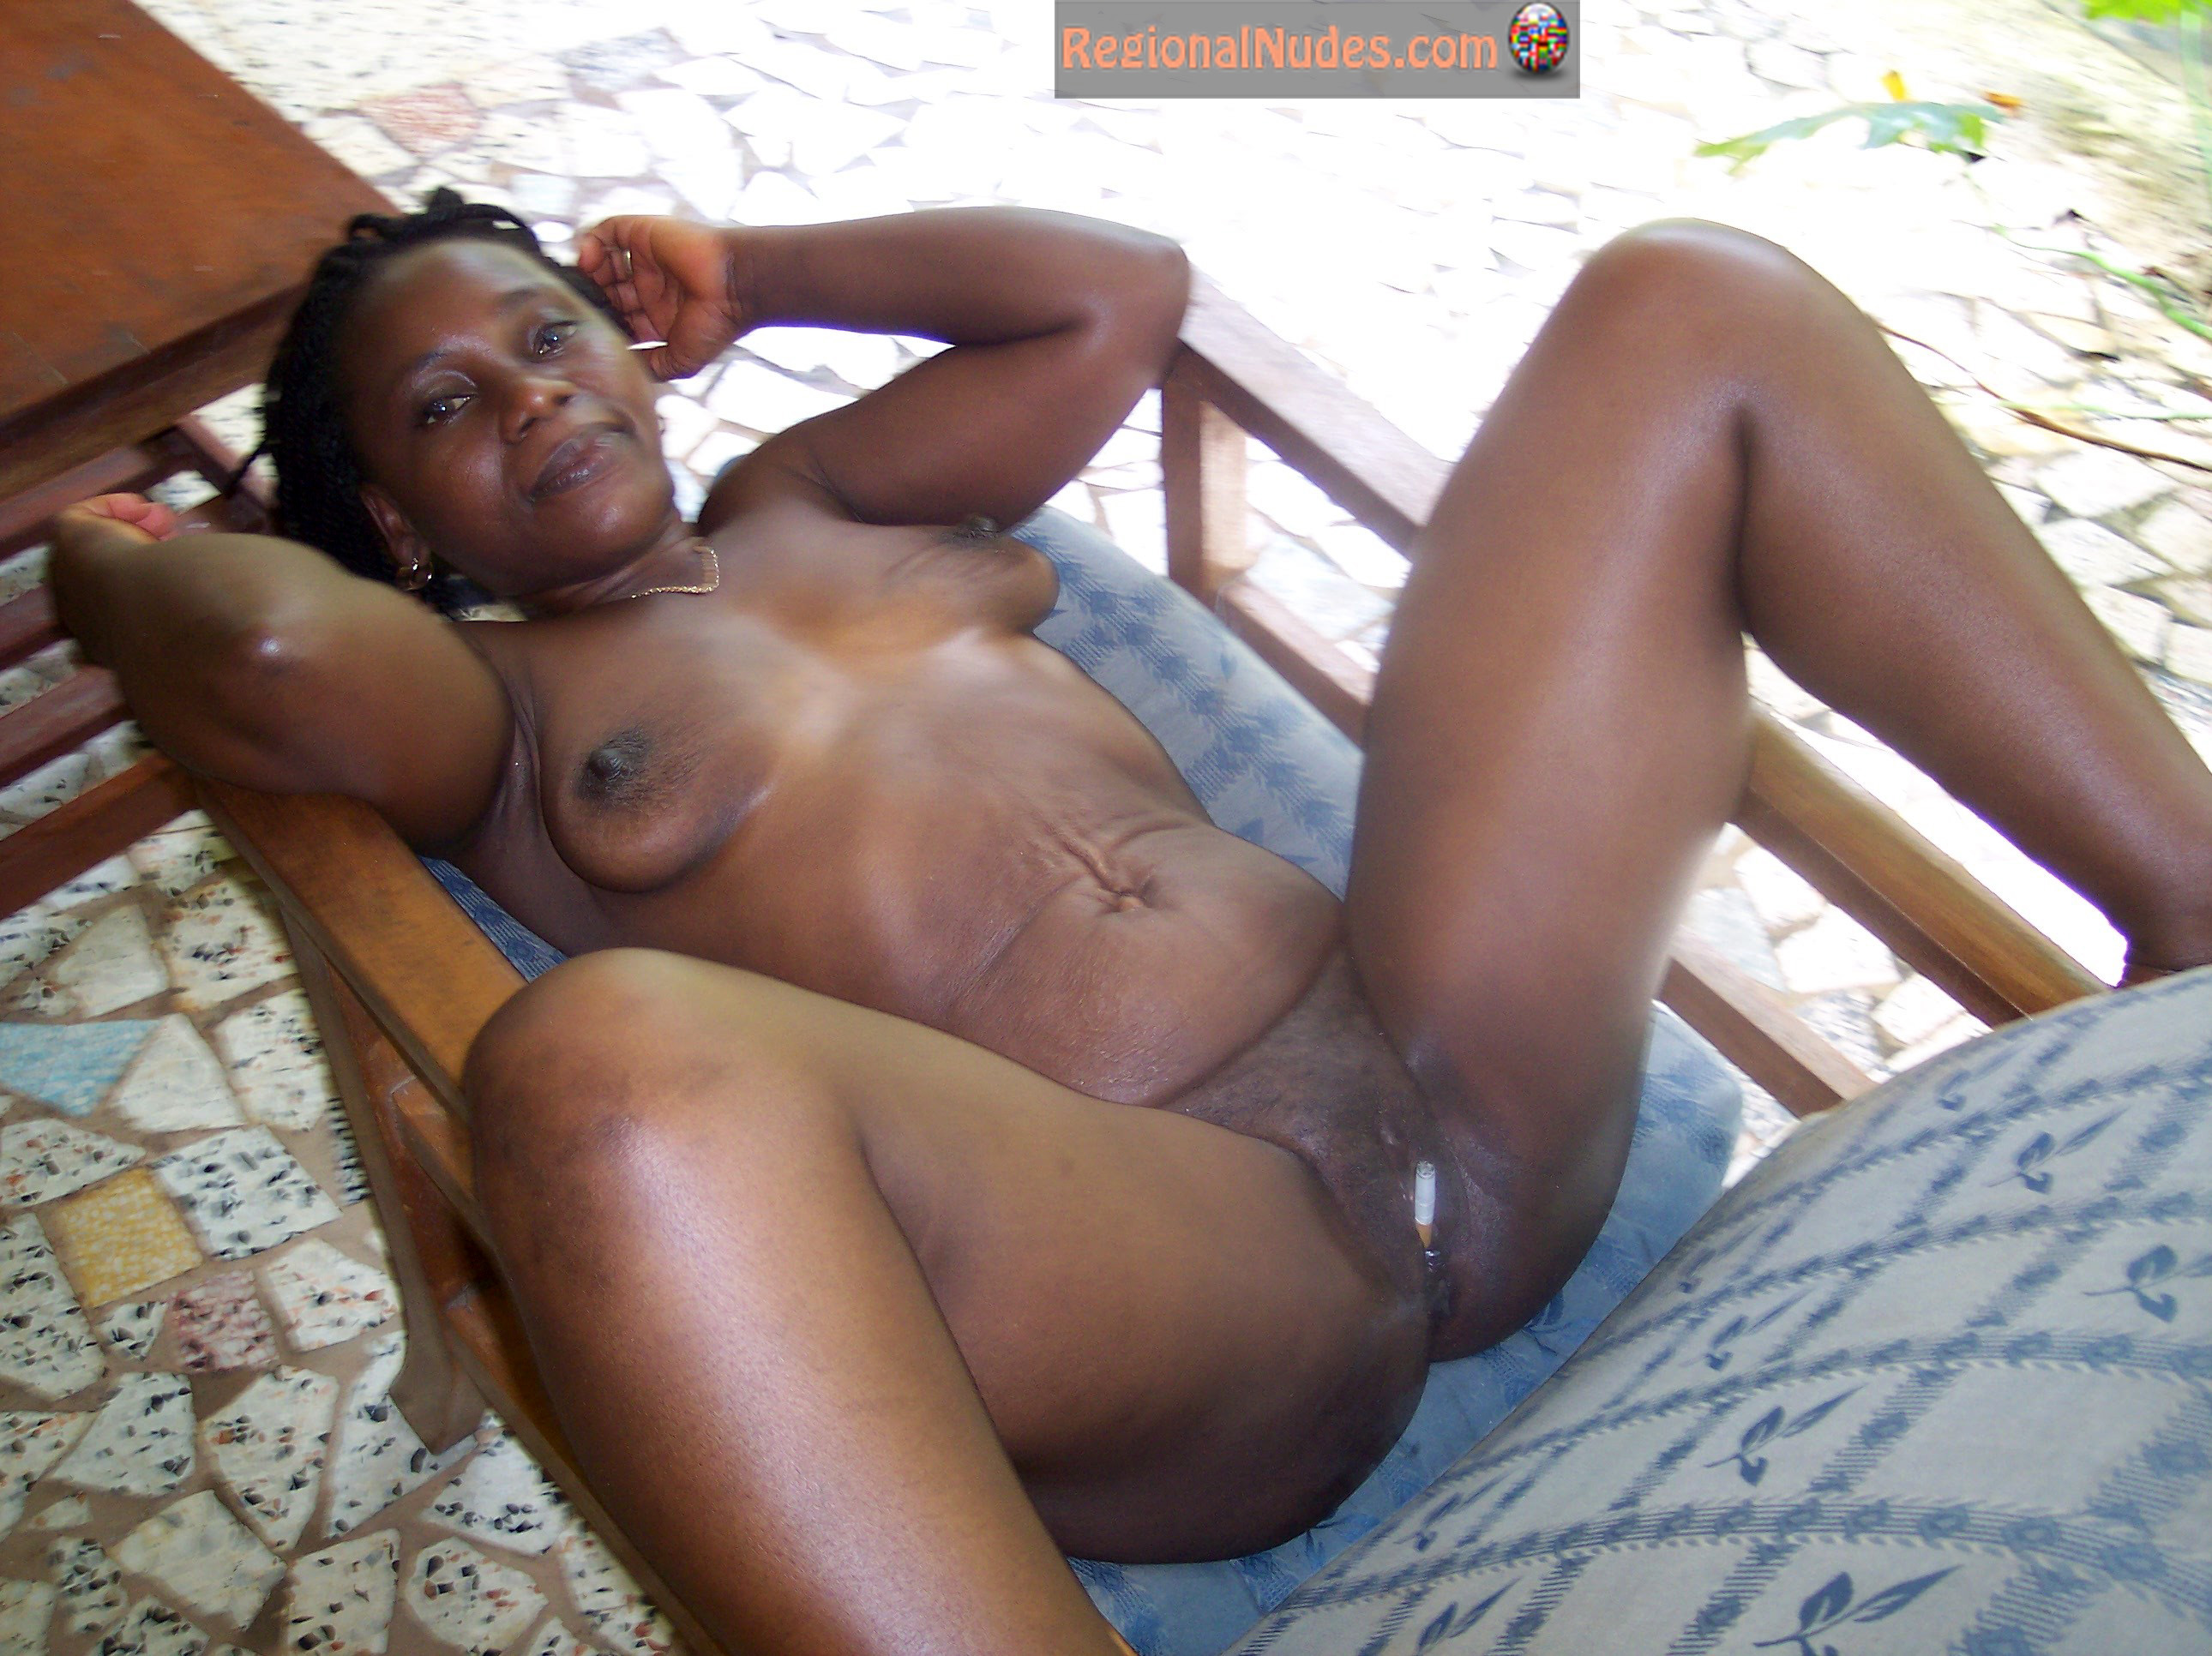 ghanaian women free nude videos